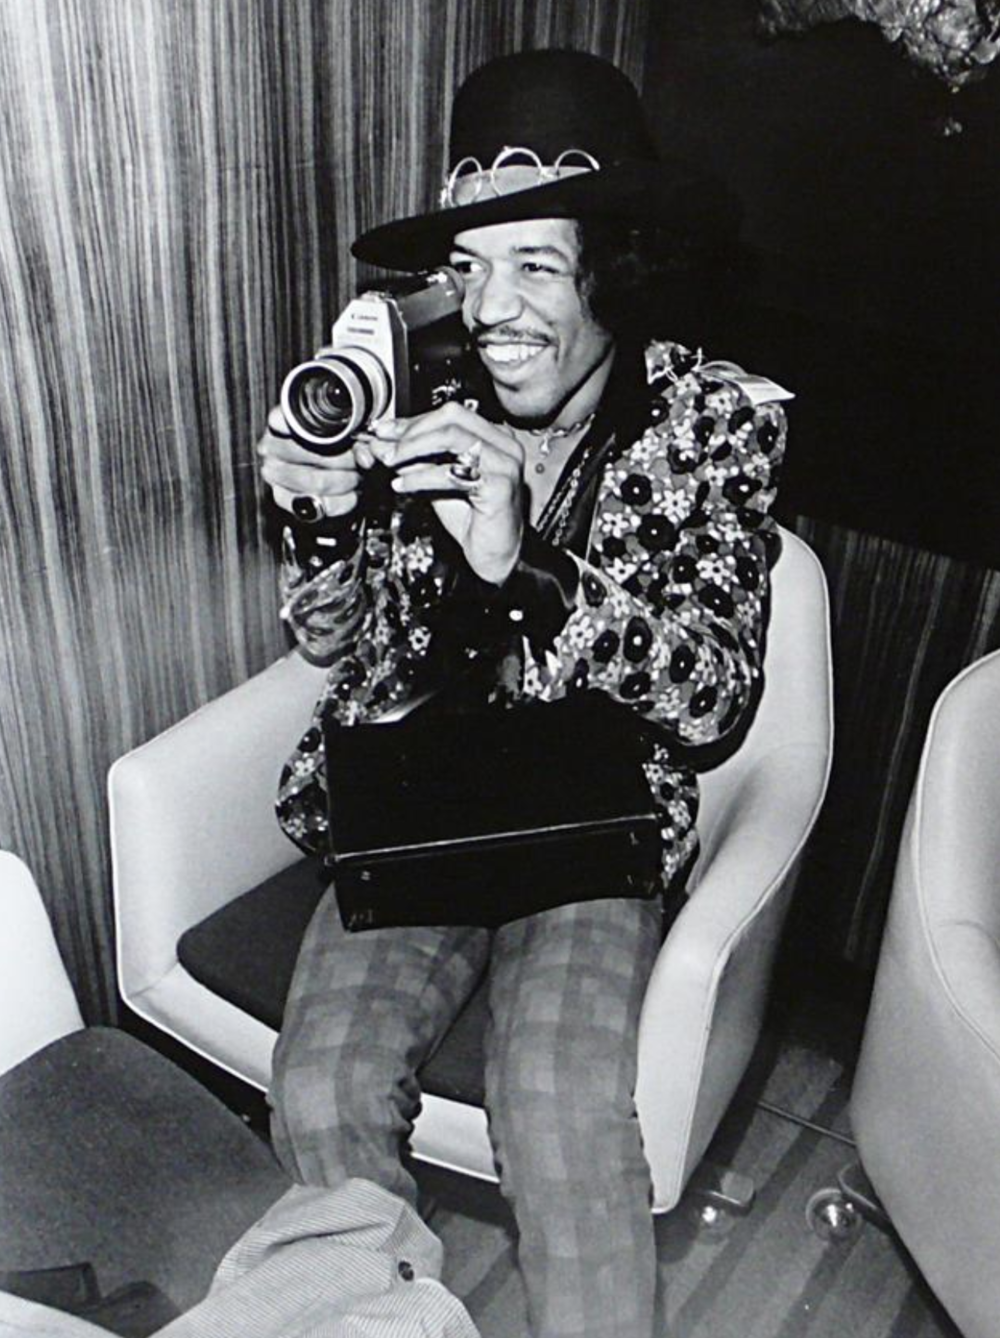 Elliot Landy  211 - Jimi Hendrix  Press Conference, on top of Pan Am building, NYC, 1968.  Silver gelatin limited edition photographic print  Email us for all inquiries: gerard@robertkiddgallery.com